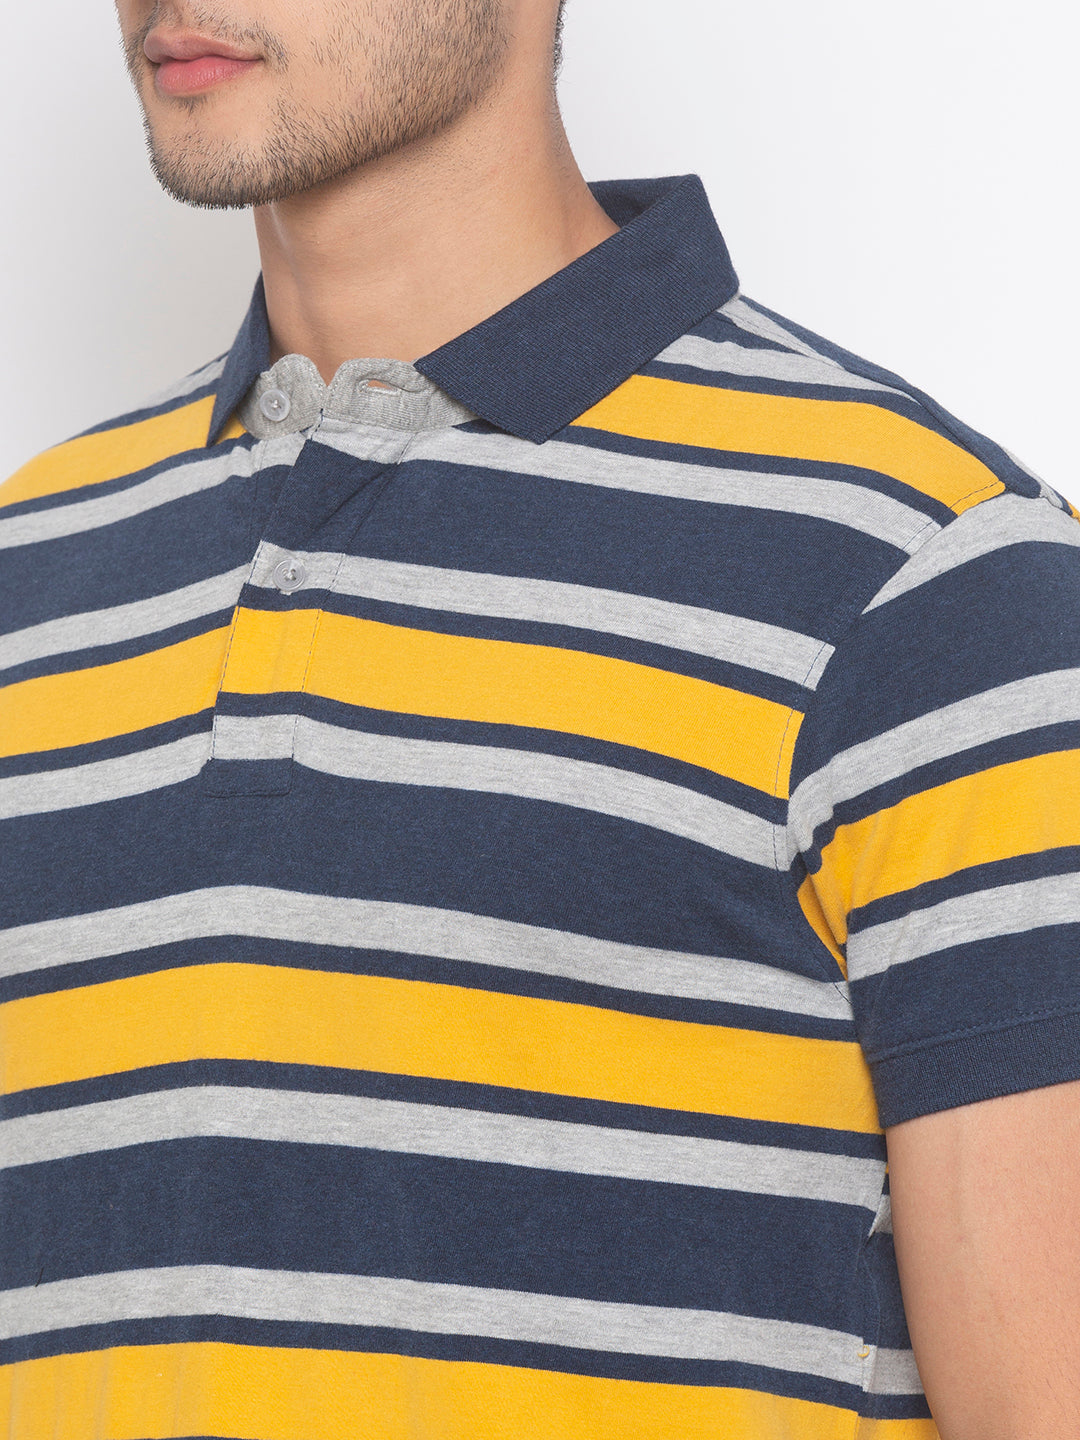 Globus Mustard & Navy Blue Striped T-Shirt-5